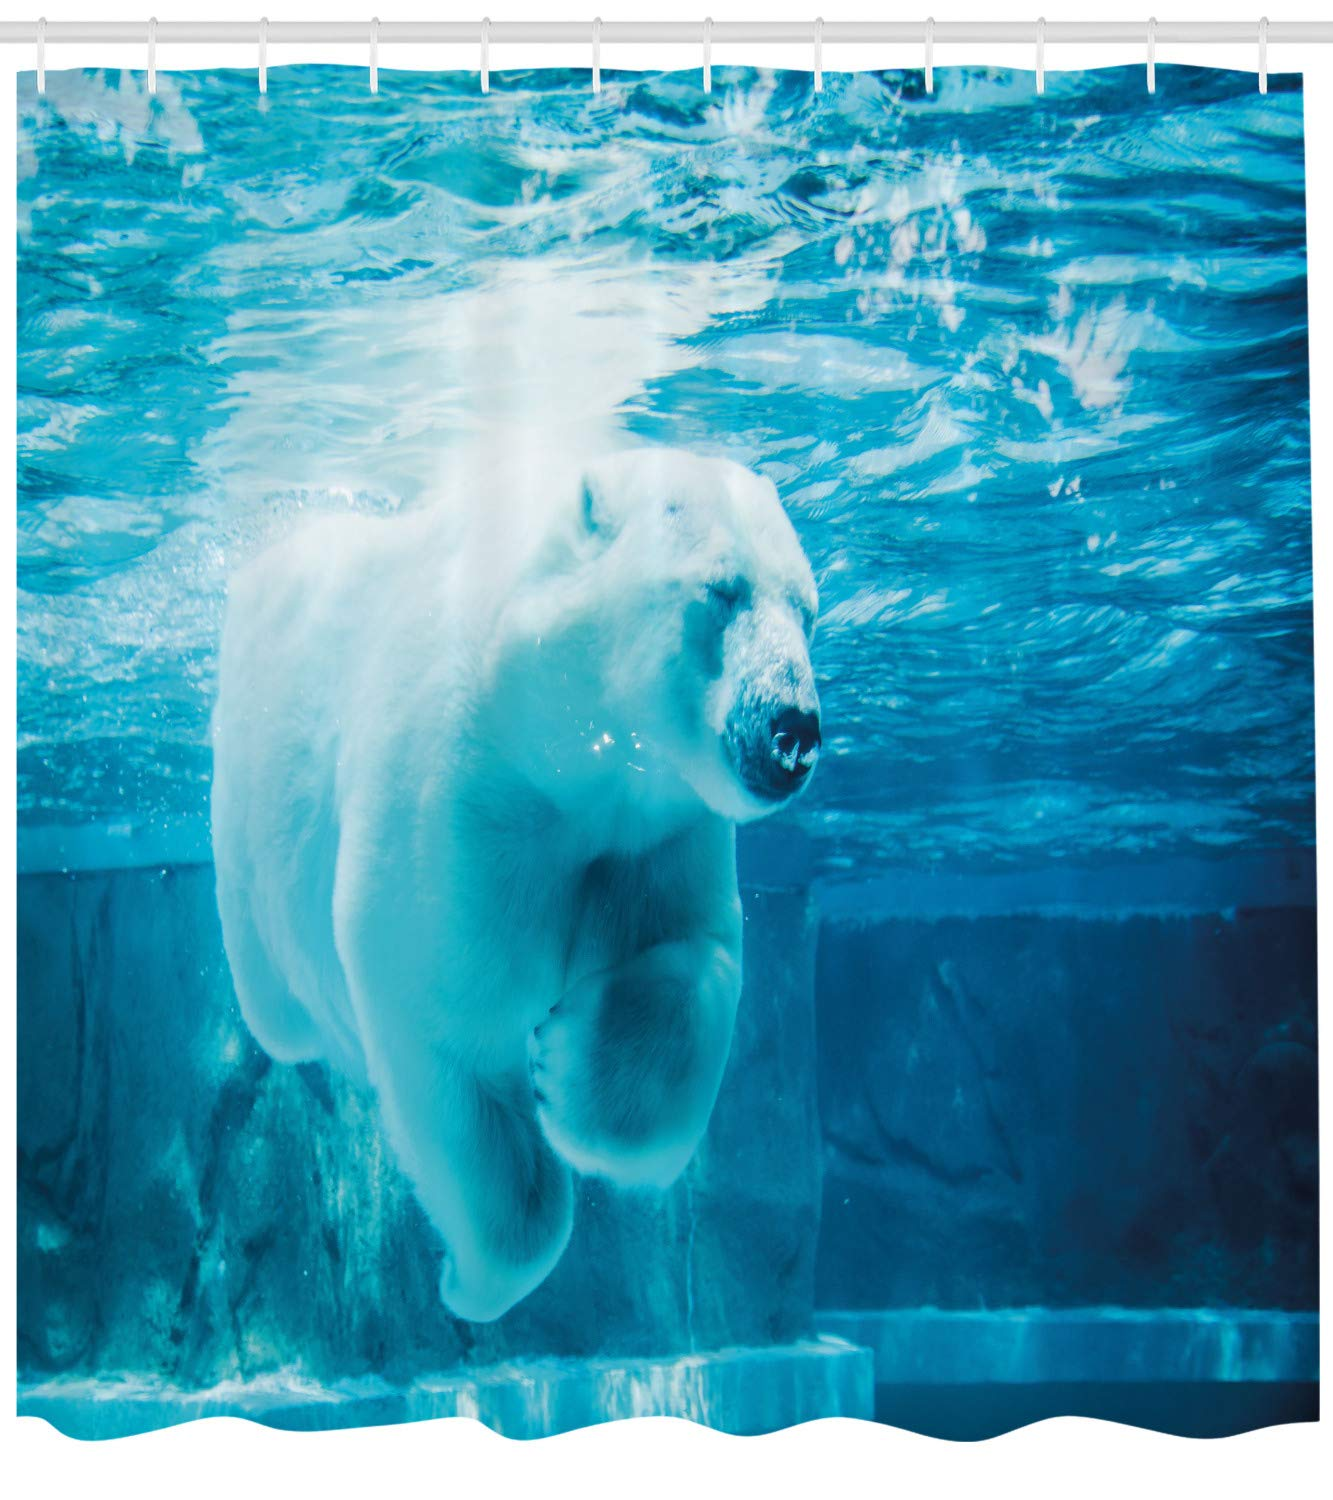 Ambesonne Bear Shower Curtain, Arctic Polar Bear Dipping into Water Swimming Ursus Maritimus Underwater View, Fabric Bathroom Decor Set with Hooks, 75 inches Long, Blue